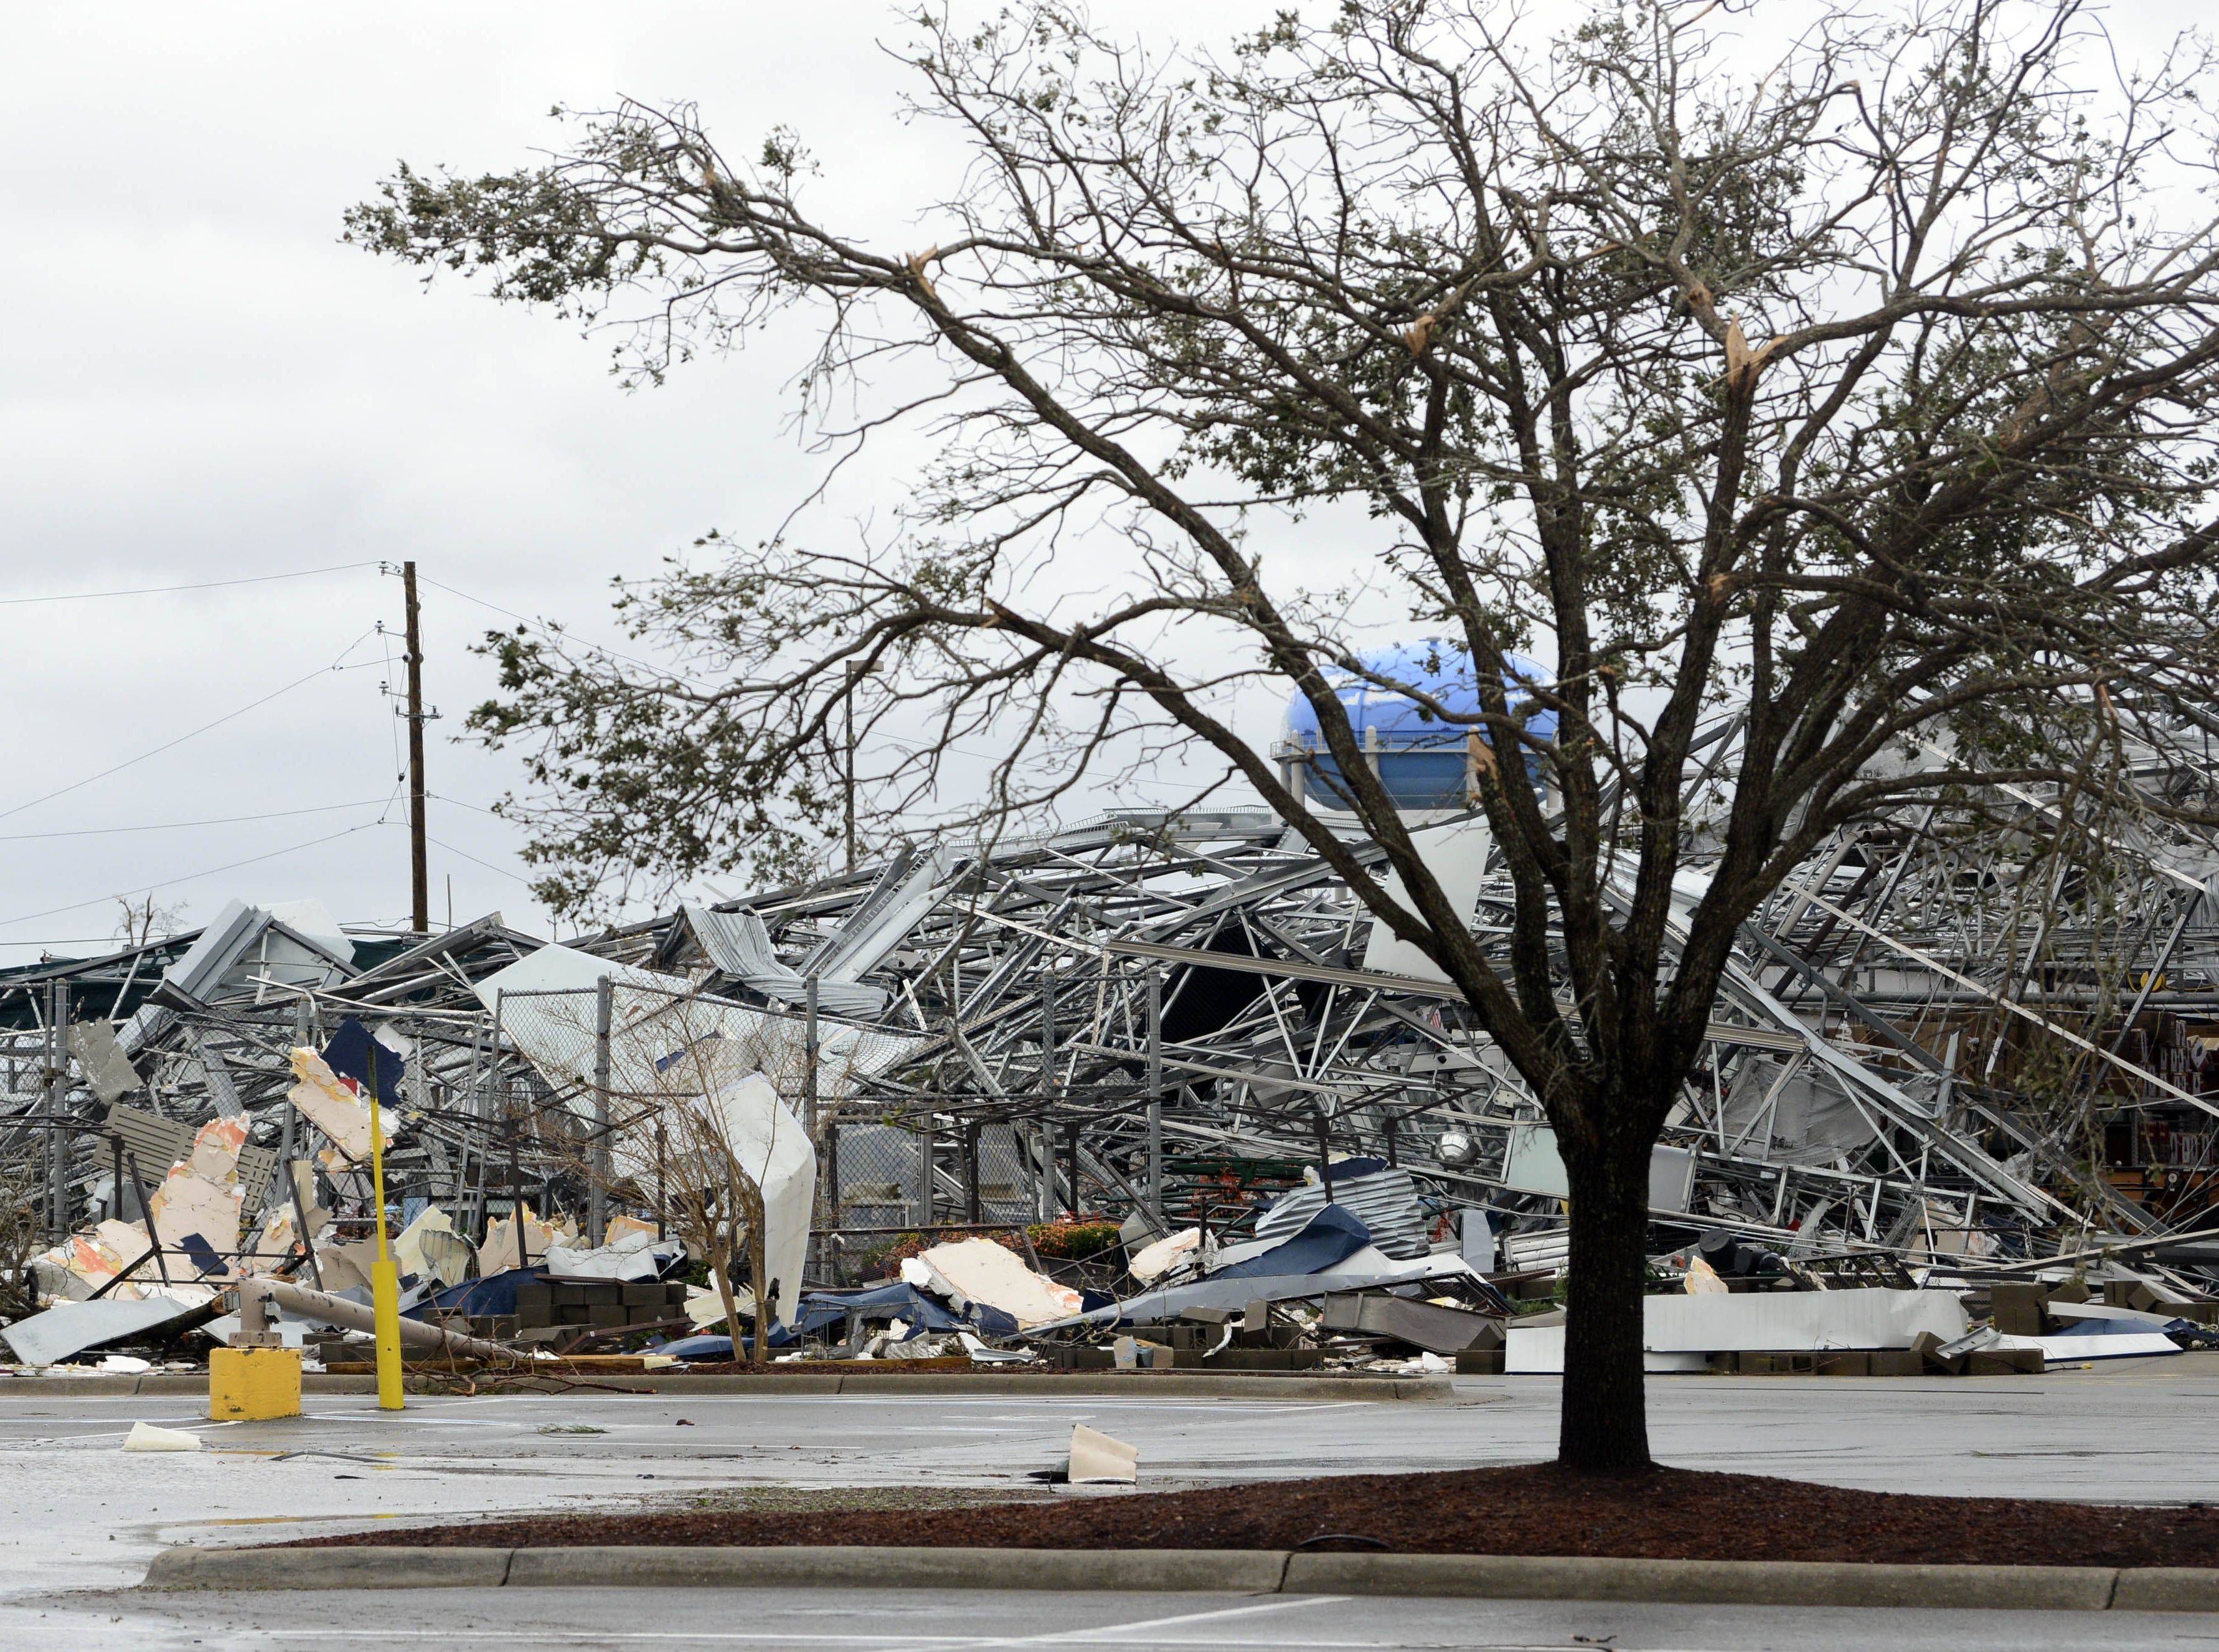 The garden center of the Lowes on 23rd Street in Panama City FL was leveled by Hurricane Michael.